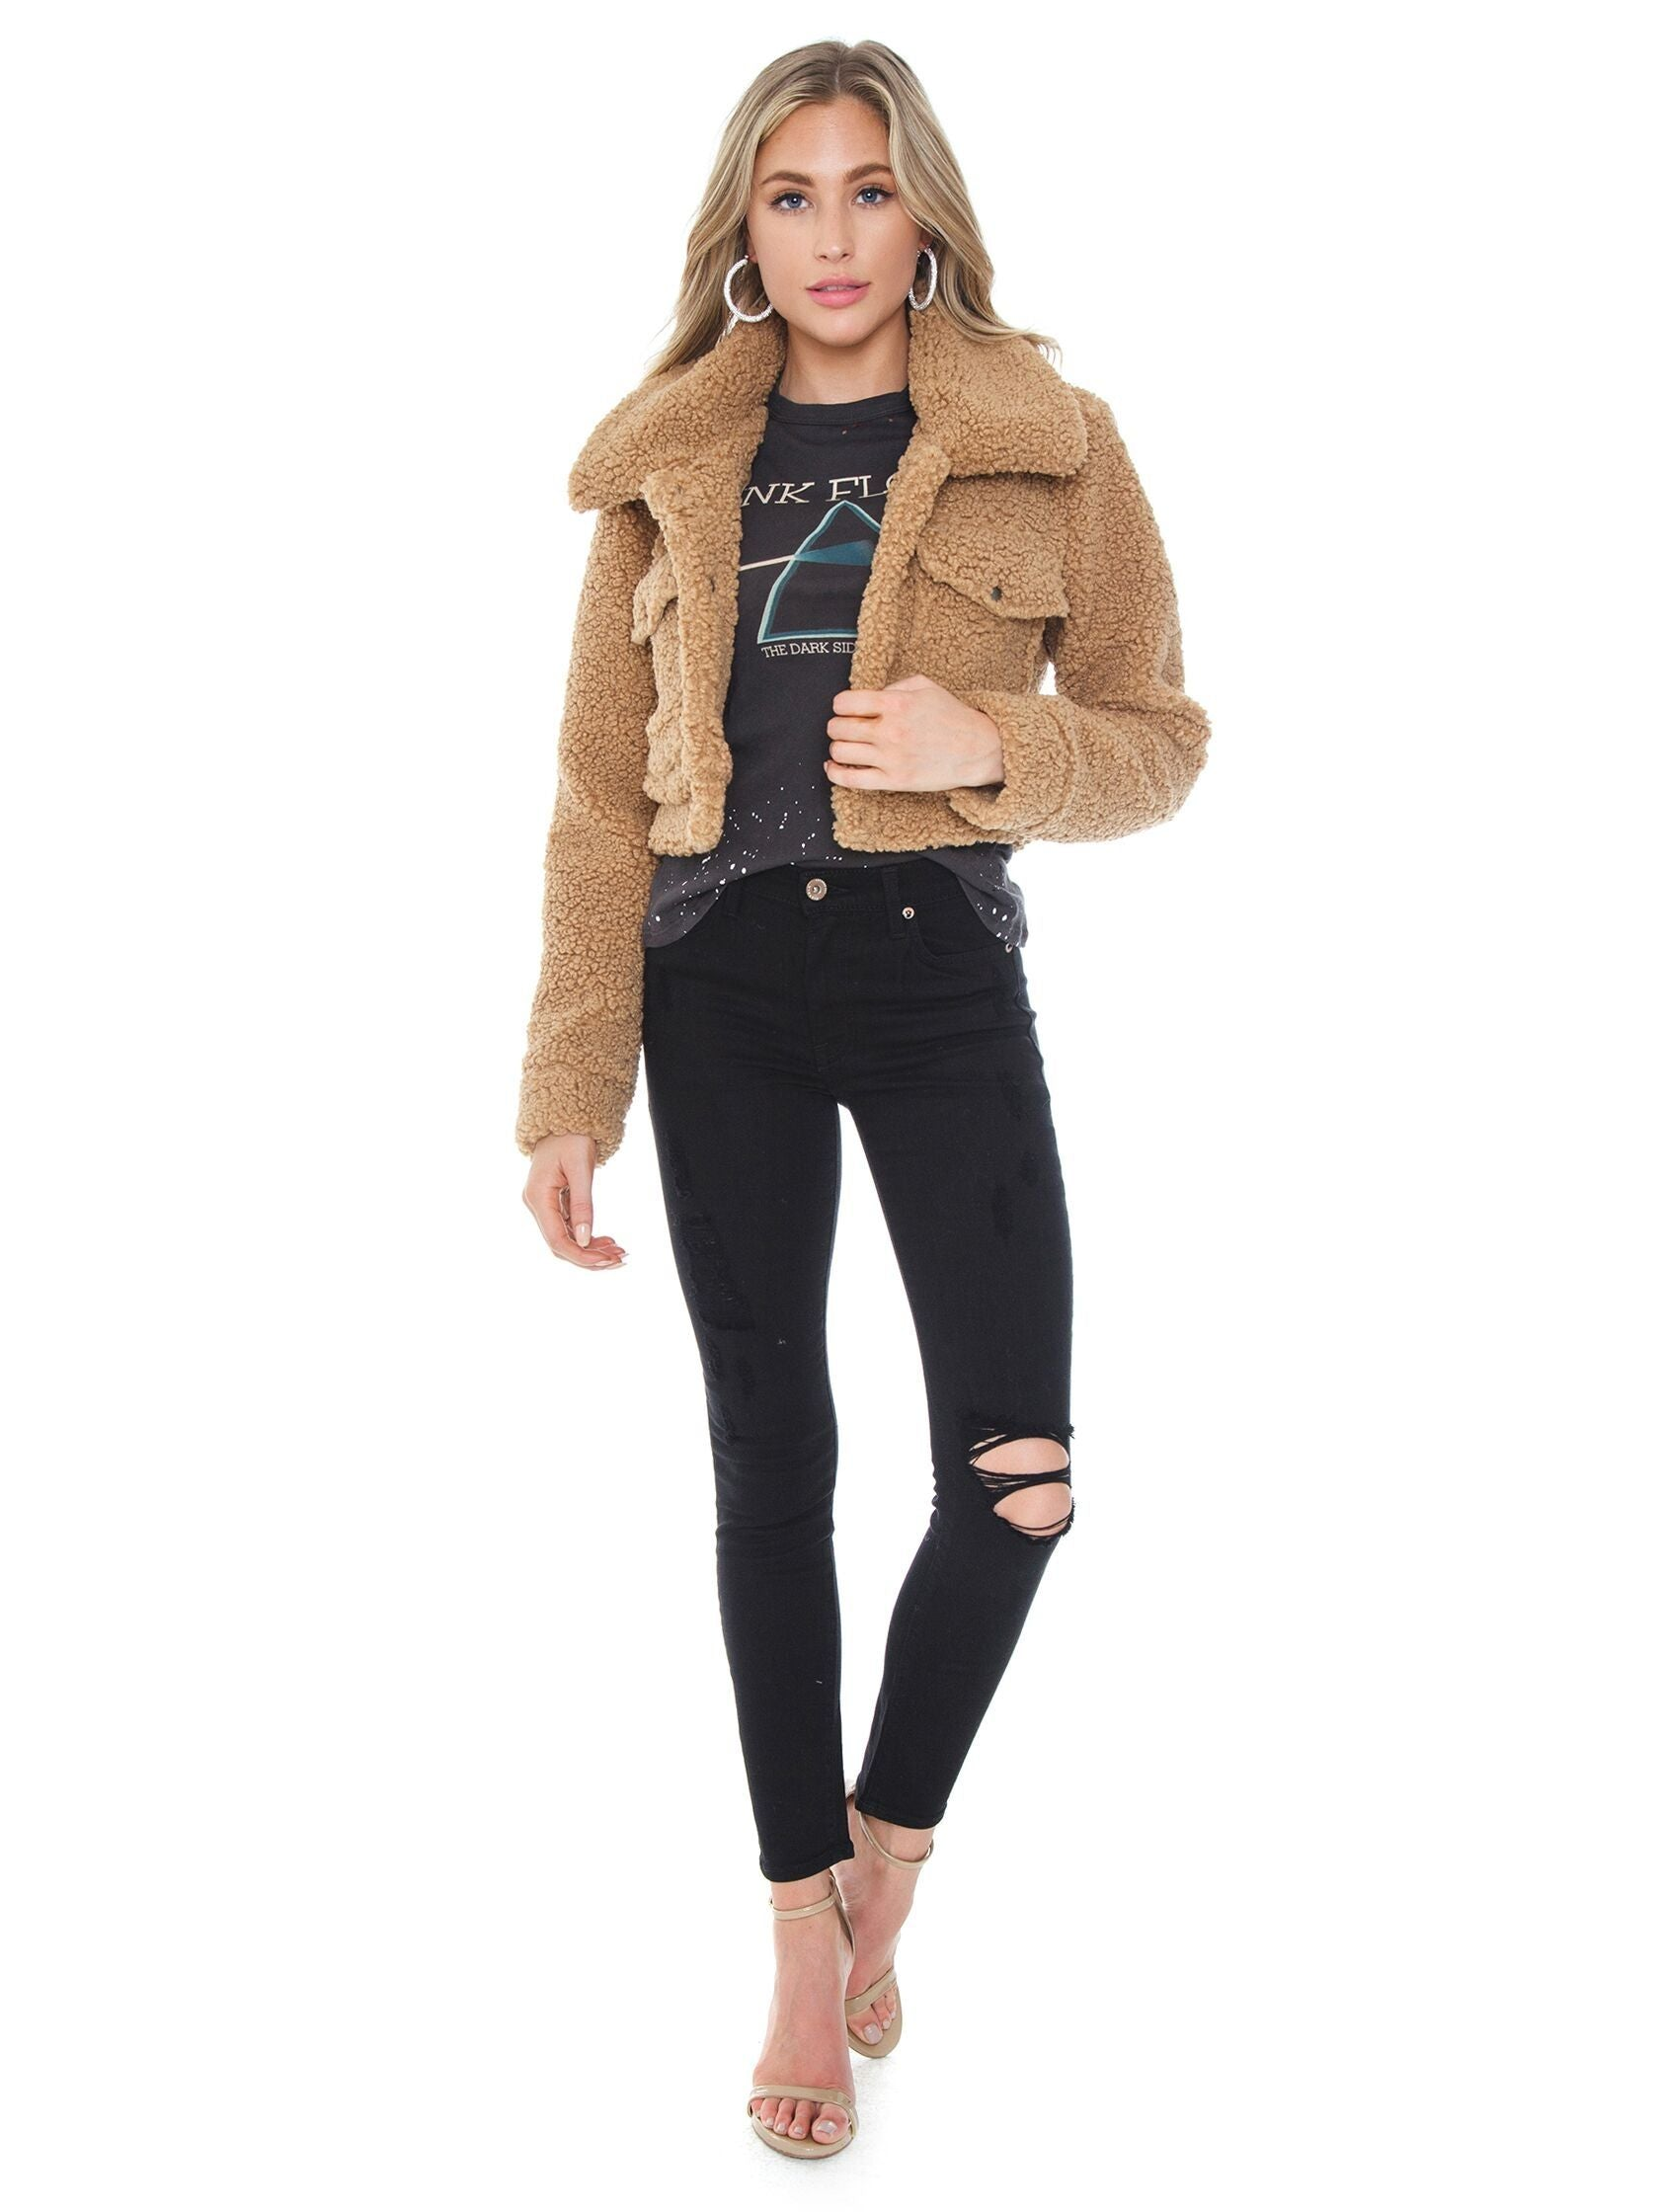 Girl wearing a jacket rental from BARDOT called Crop Sherpa Jacket